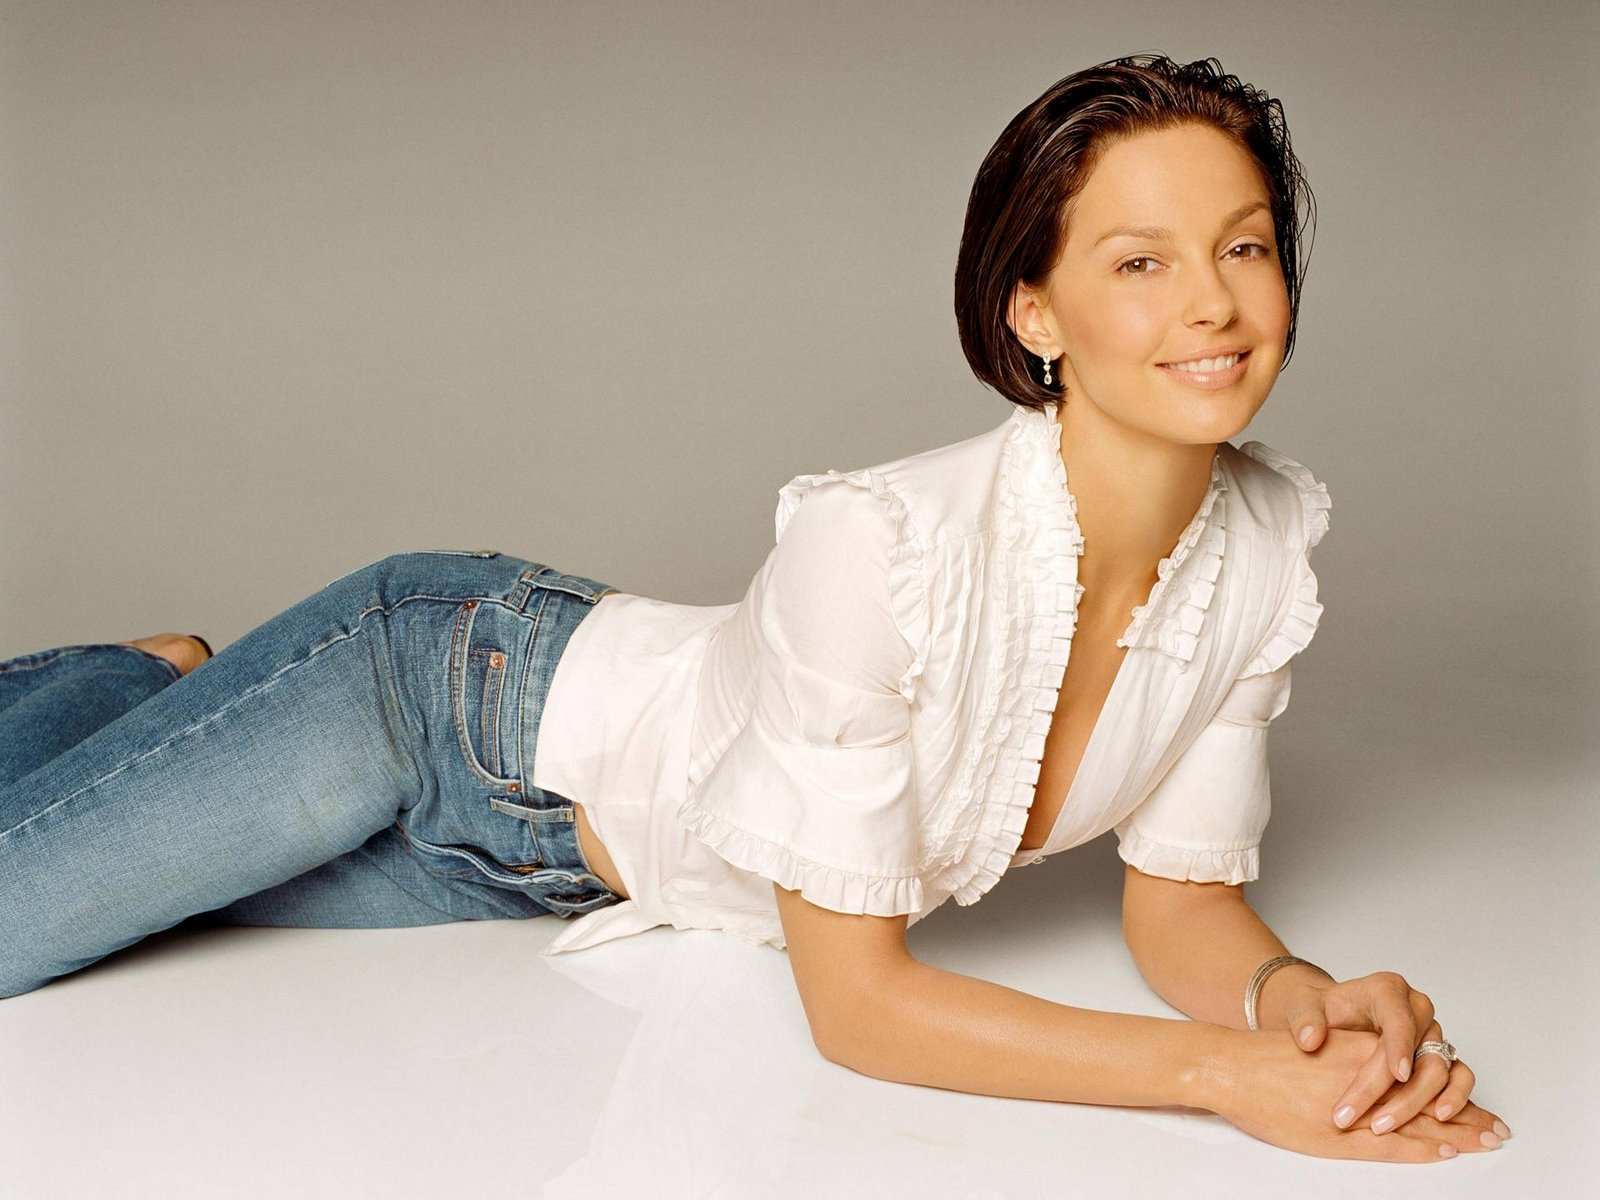 [Ashley Judd 7 1600x1200 hqmodelwallpapers[2].jpg]